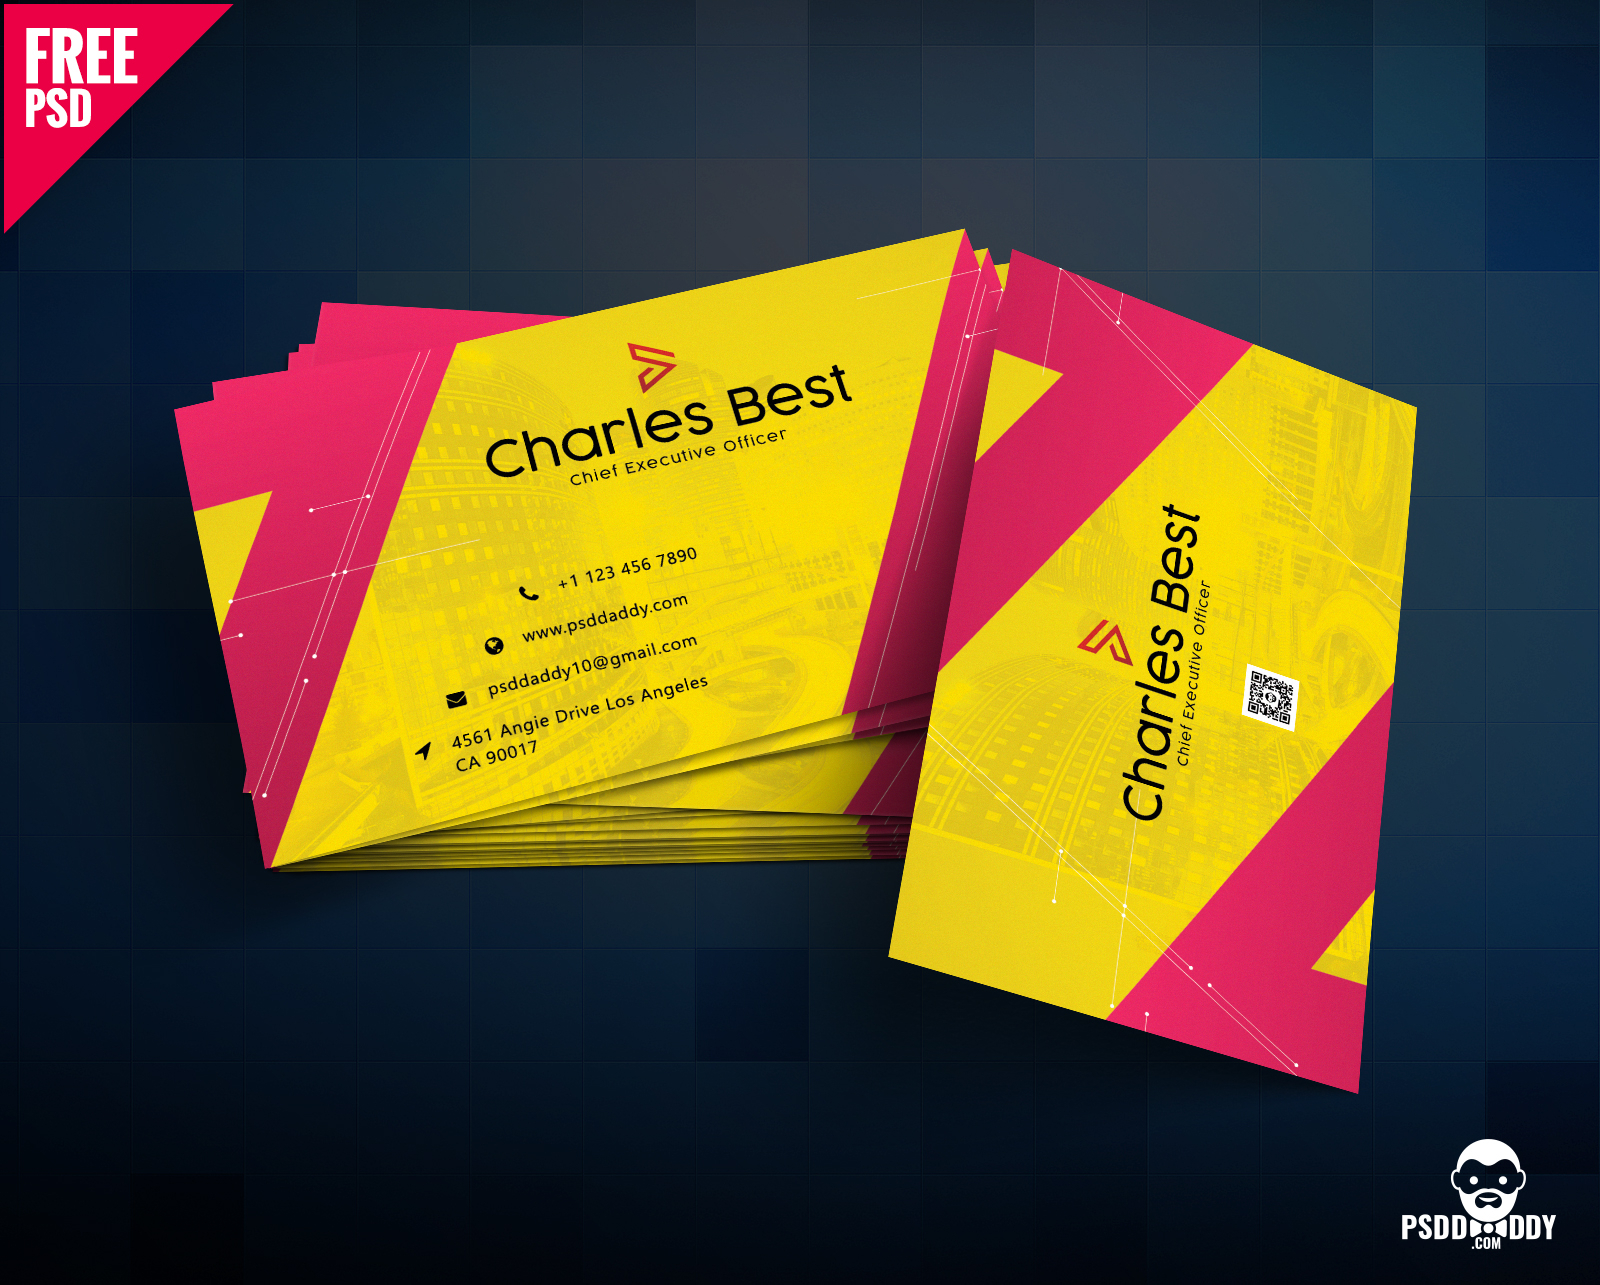 Download] Creative Business Card Free Psd   Psddaddy With Regard To Visiting Card Psd Template